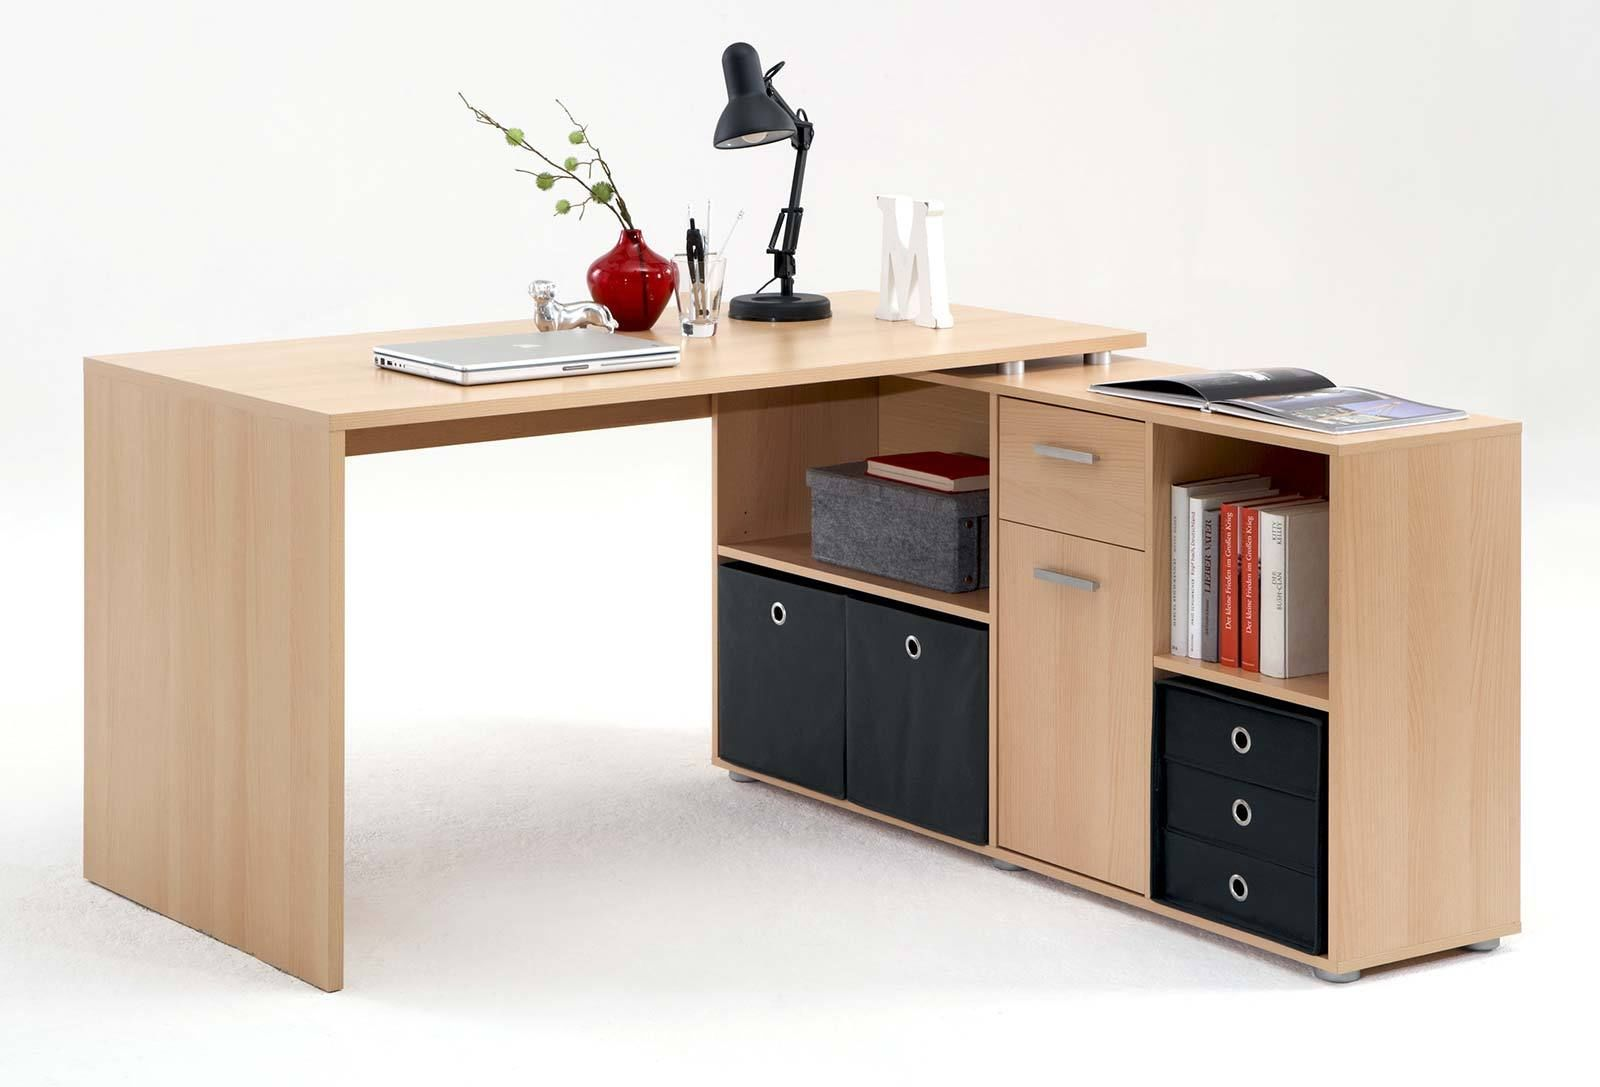 winkelschreibtisch computertisch schreibtisch lex in buche. Black Bedroom Furniture Sets. Home Design Ideas